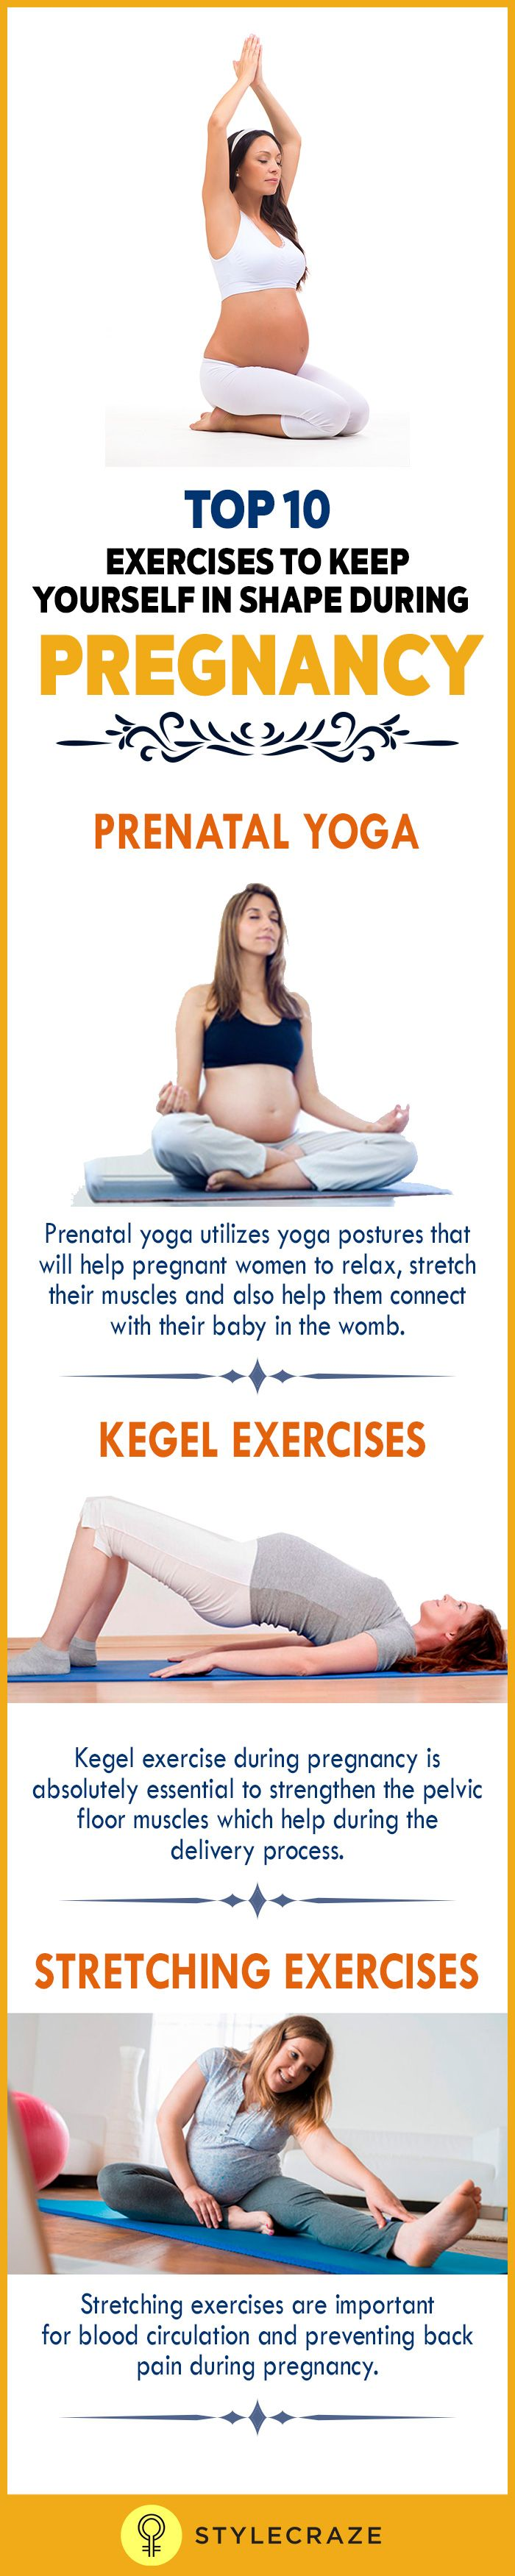 images 6 Simple Steps To Do Butterfly Exercise During Pregnancy